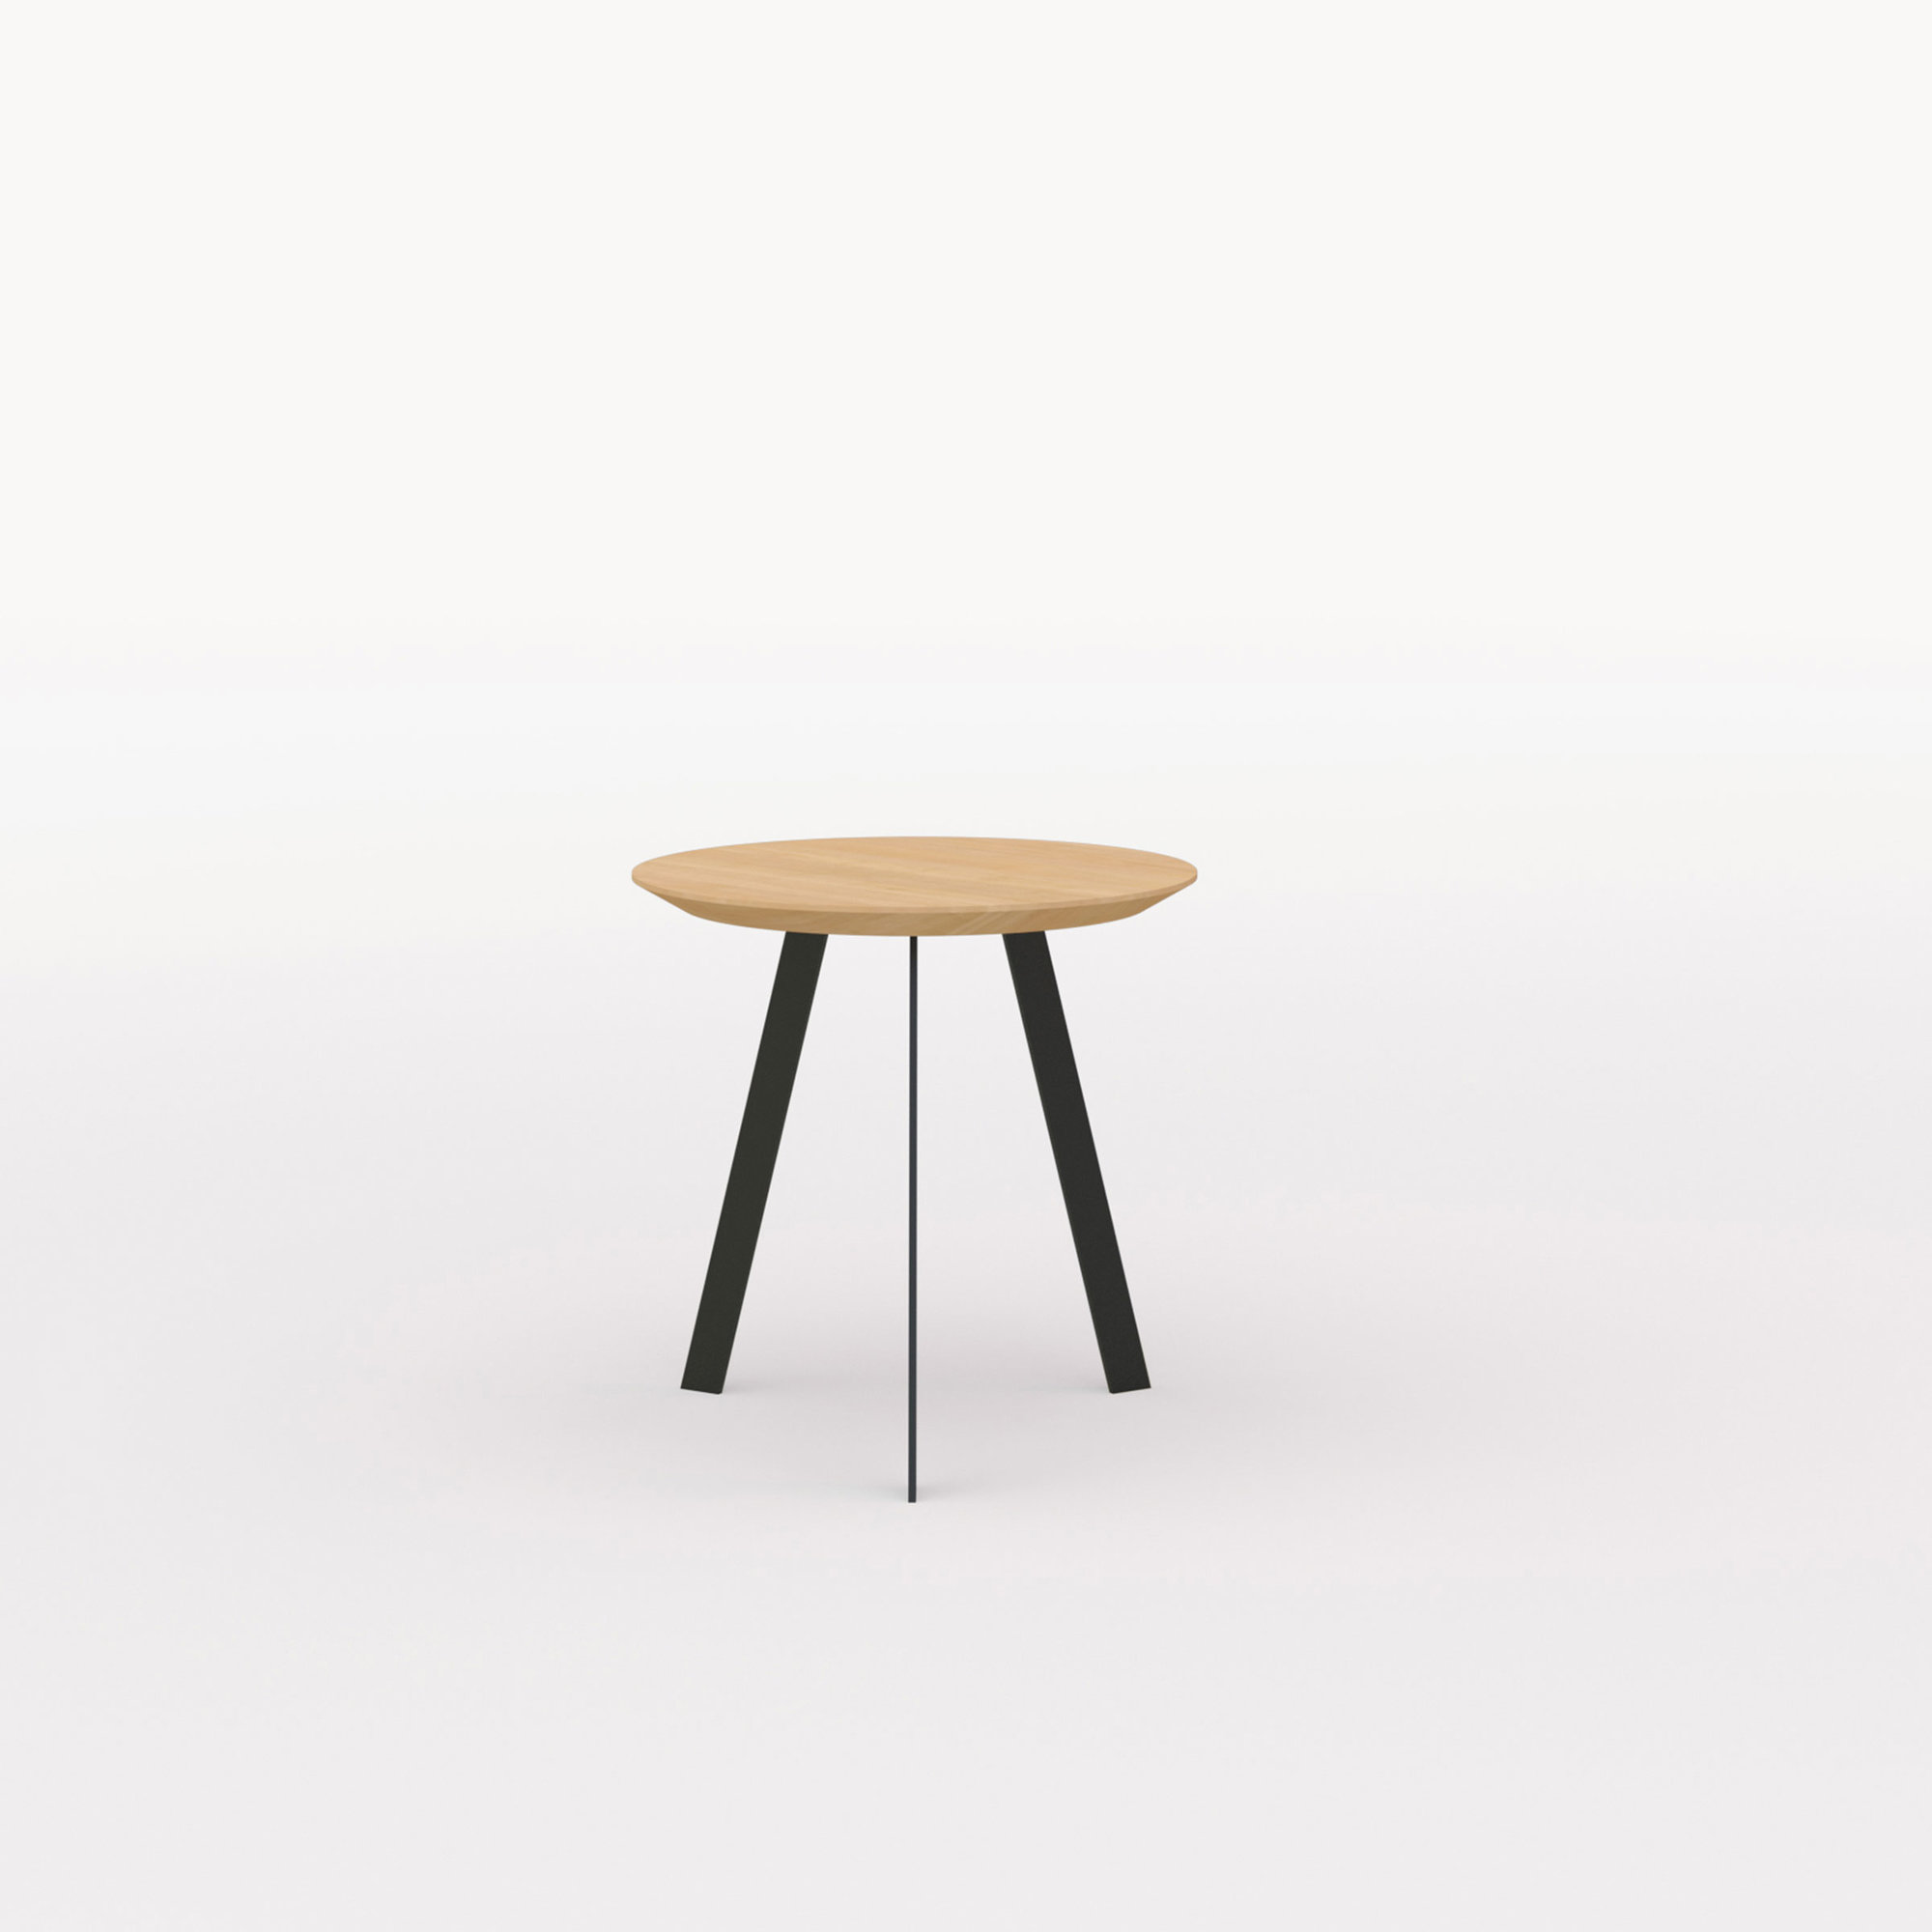 Design salontafel | New Co Coffee Table 50 Round Black | Oak hardwax oil natural 3062 | Studio HENK | Listing_image